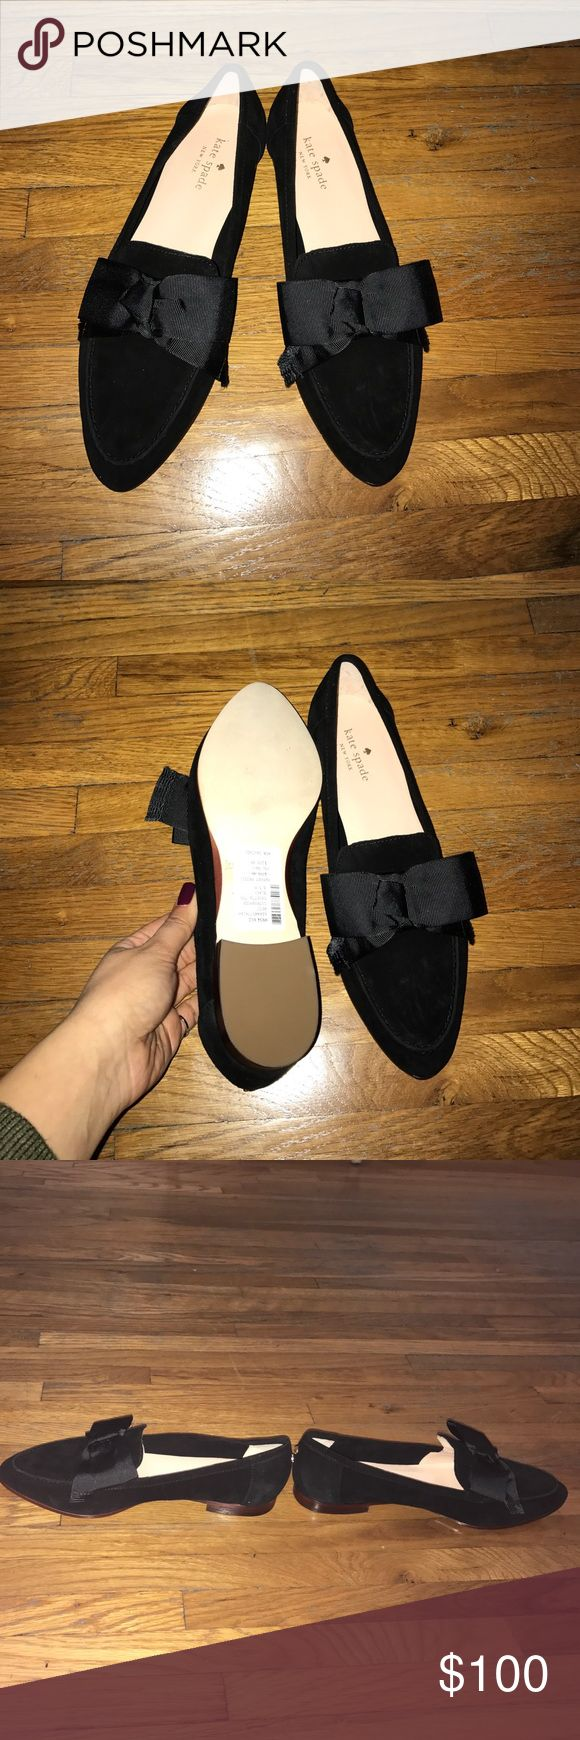 Kate Spade black suede loafers with bow. Brand new Kate Spade loafers. Black suede with black bow. Adorable!!!!! Size 8.5. kate spade Shoes Flats & Loafers